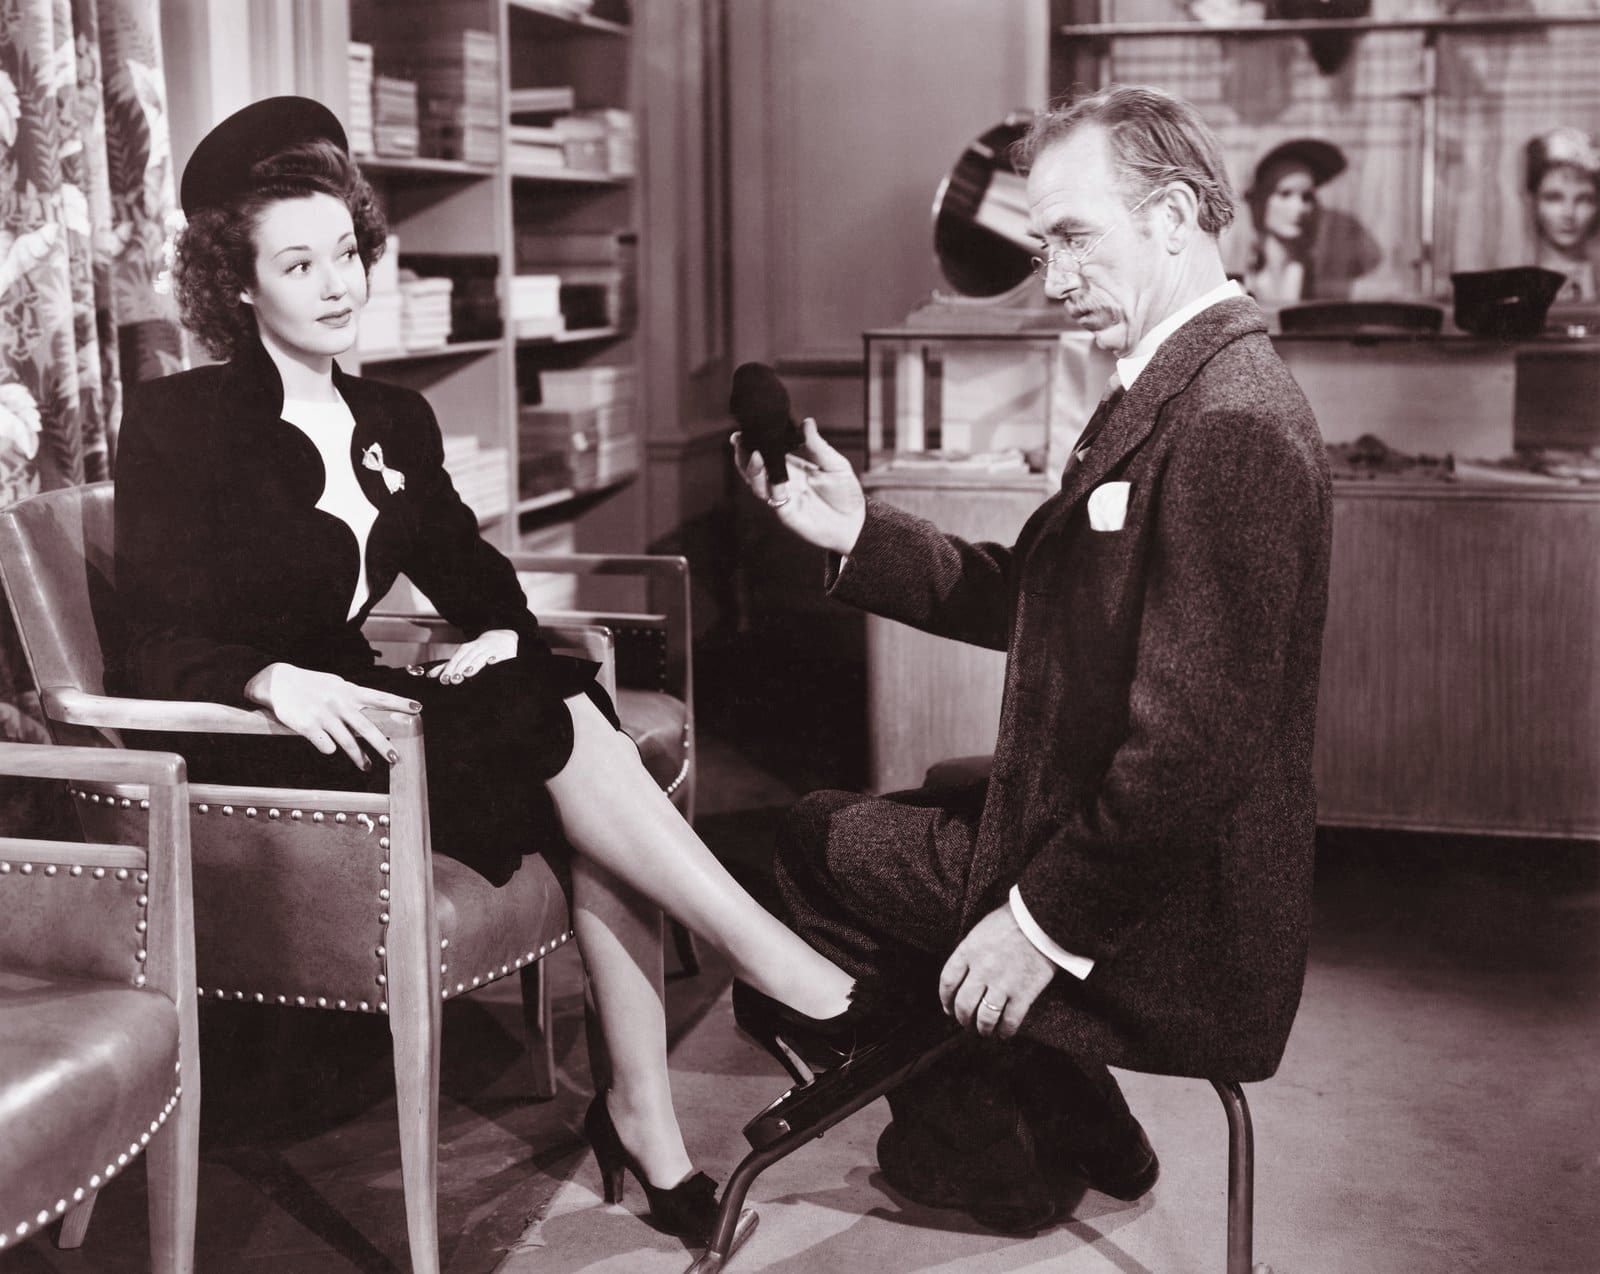 Woman trying on shoes with help of a salesperson (c1940s)